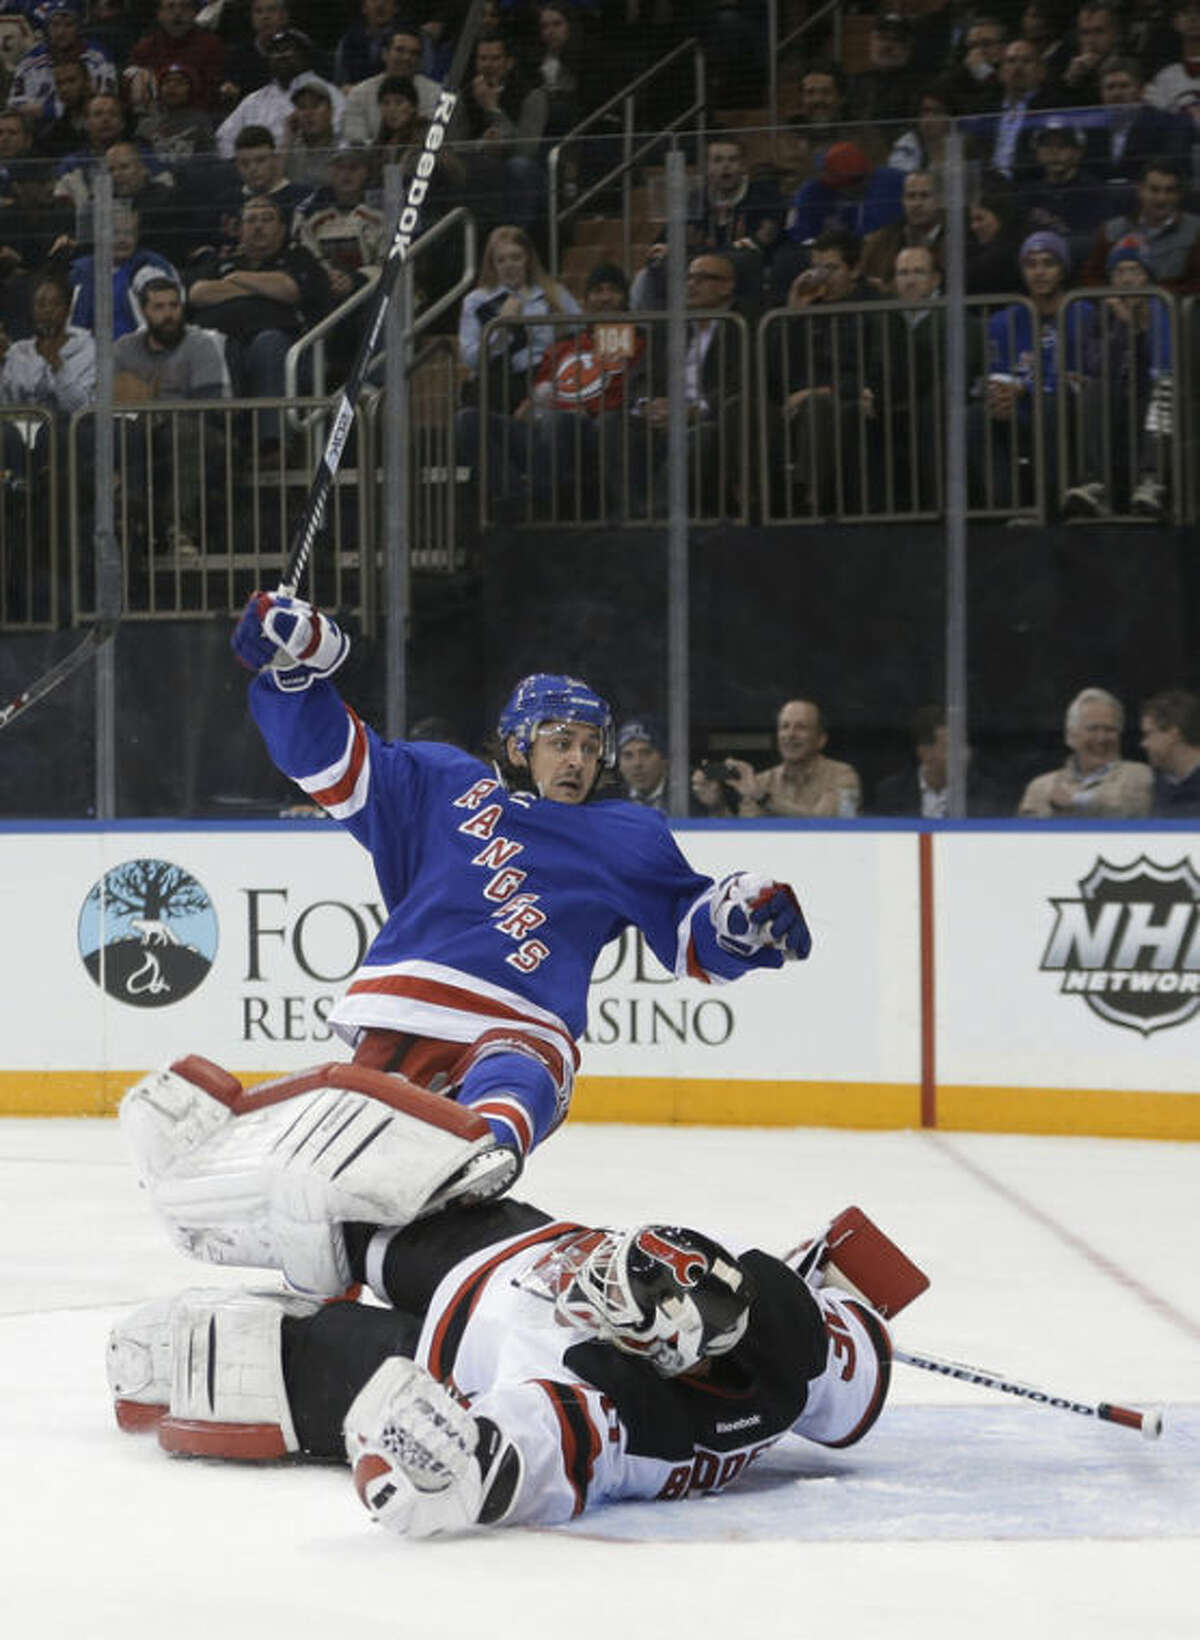 New Jersey Devils goalie Martin Brodeur (30) stops a shot as New York Rangers' Mats Zuccarello (36) looks for the puck during the second period of an NHL hockey game Tuesday, Nov. 12, 2013, in New York. (AP Photo/Frank Franklin II)